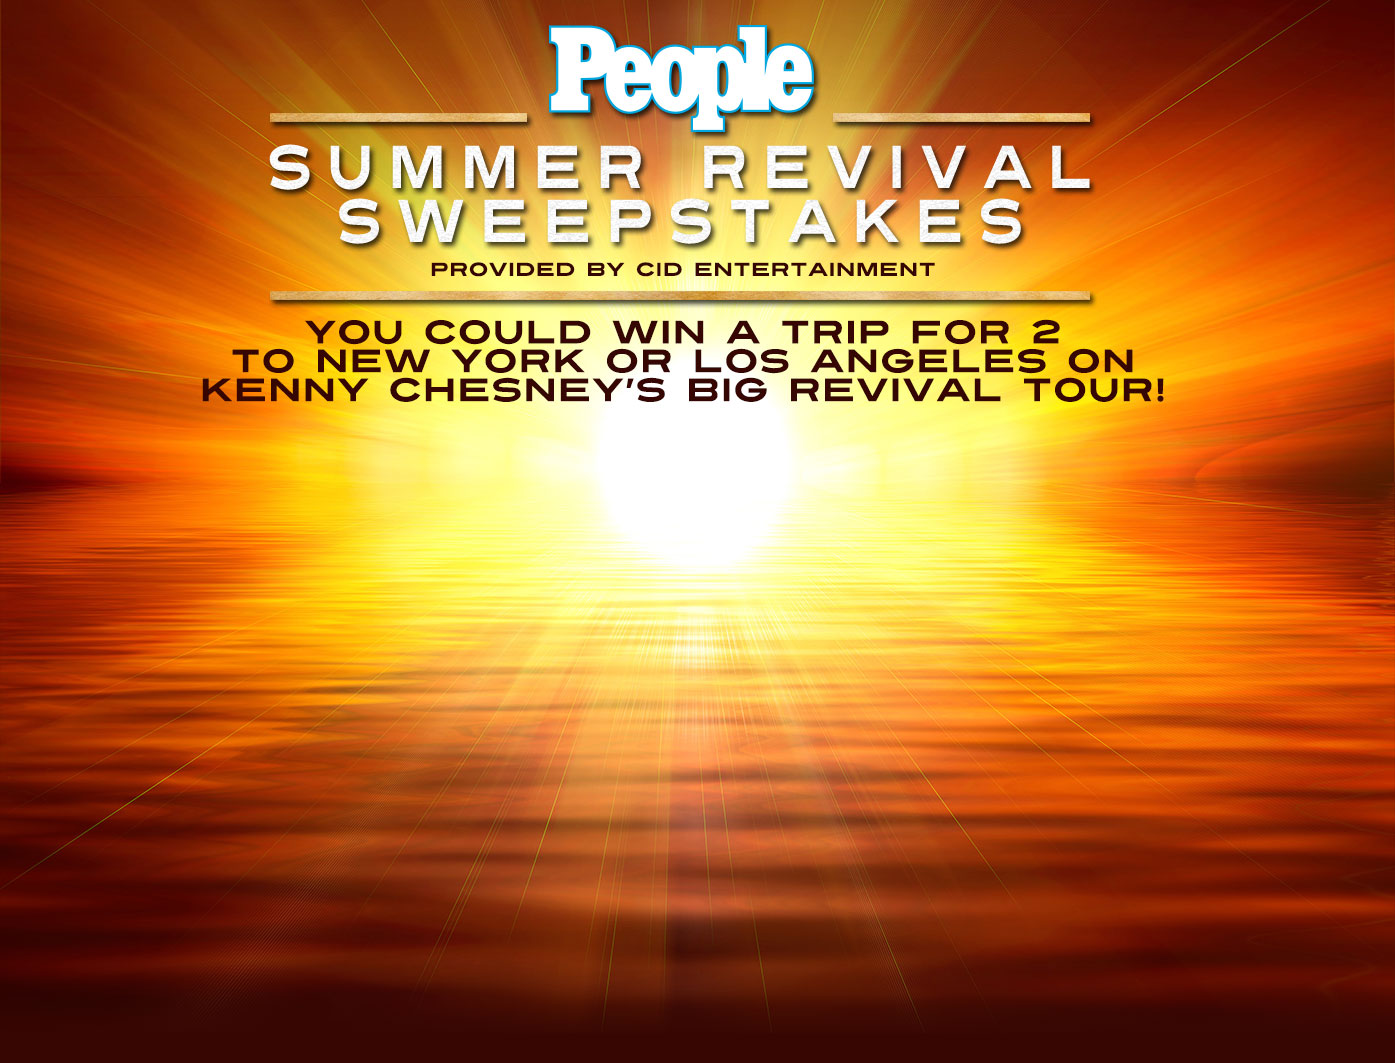 SUMMER REVIVAL SWEEPSTAKES